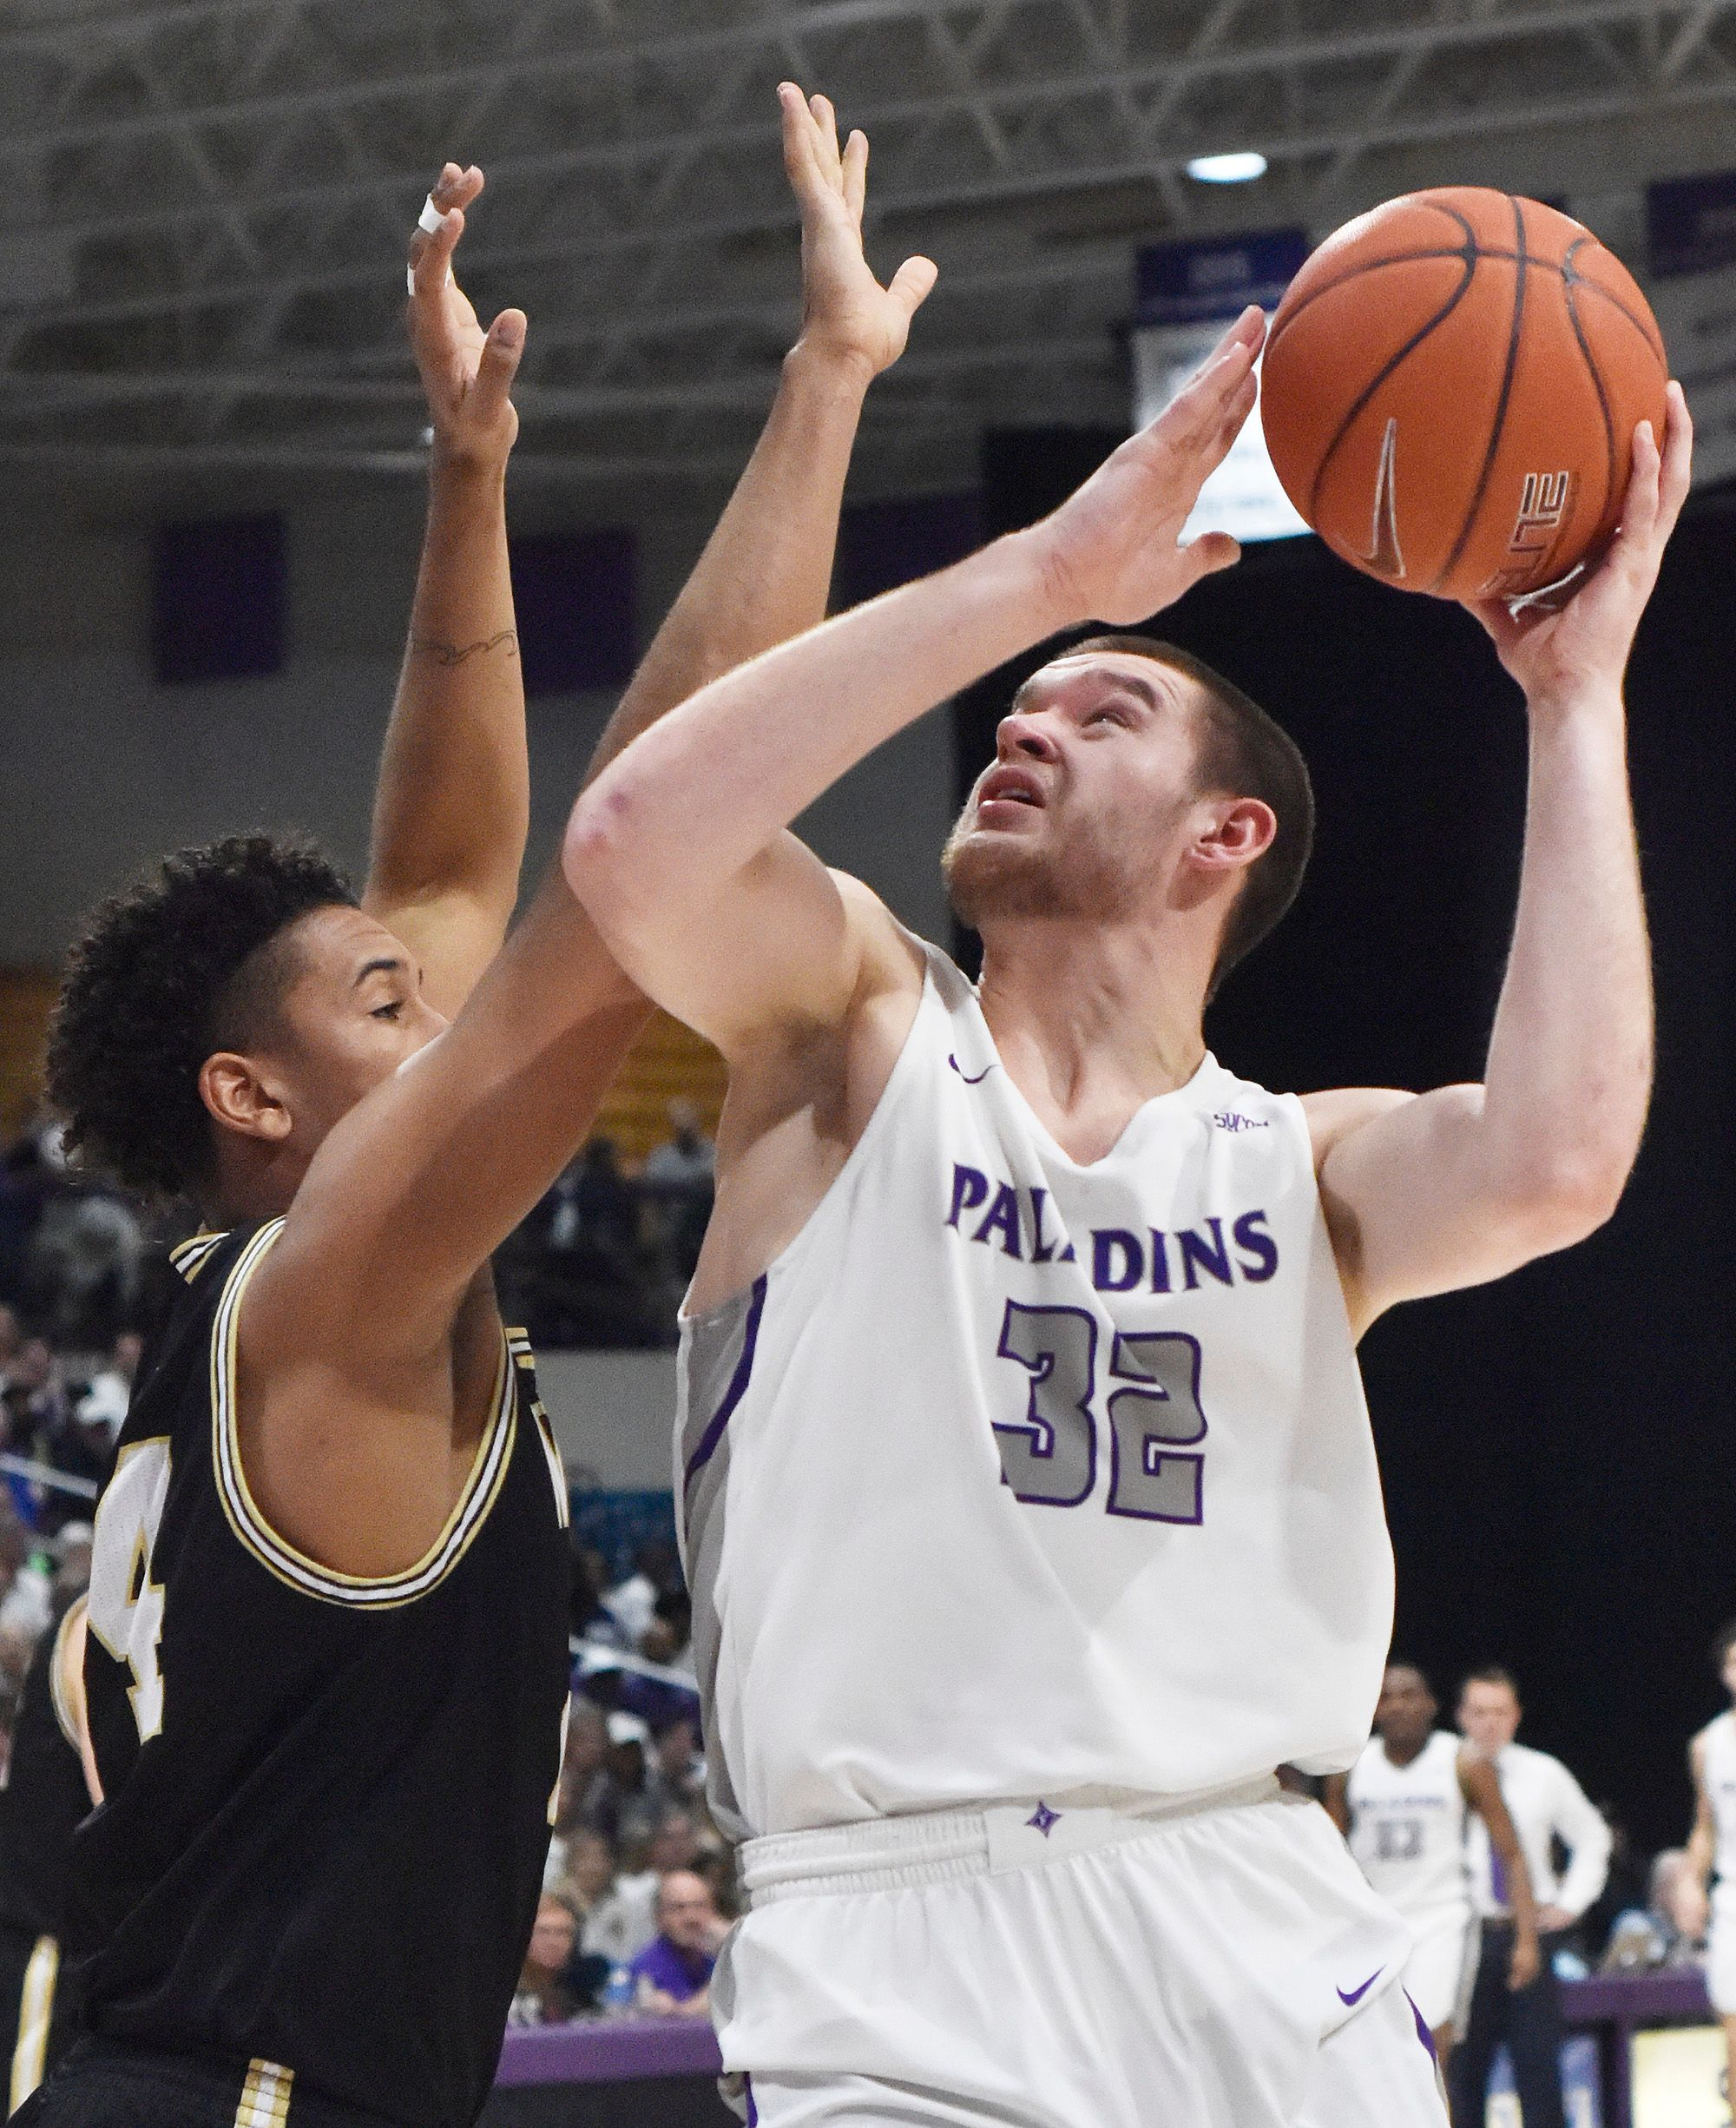 Furman men's basketball notches schoolrecord 24th win